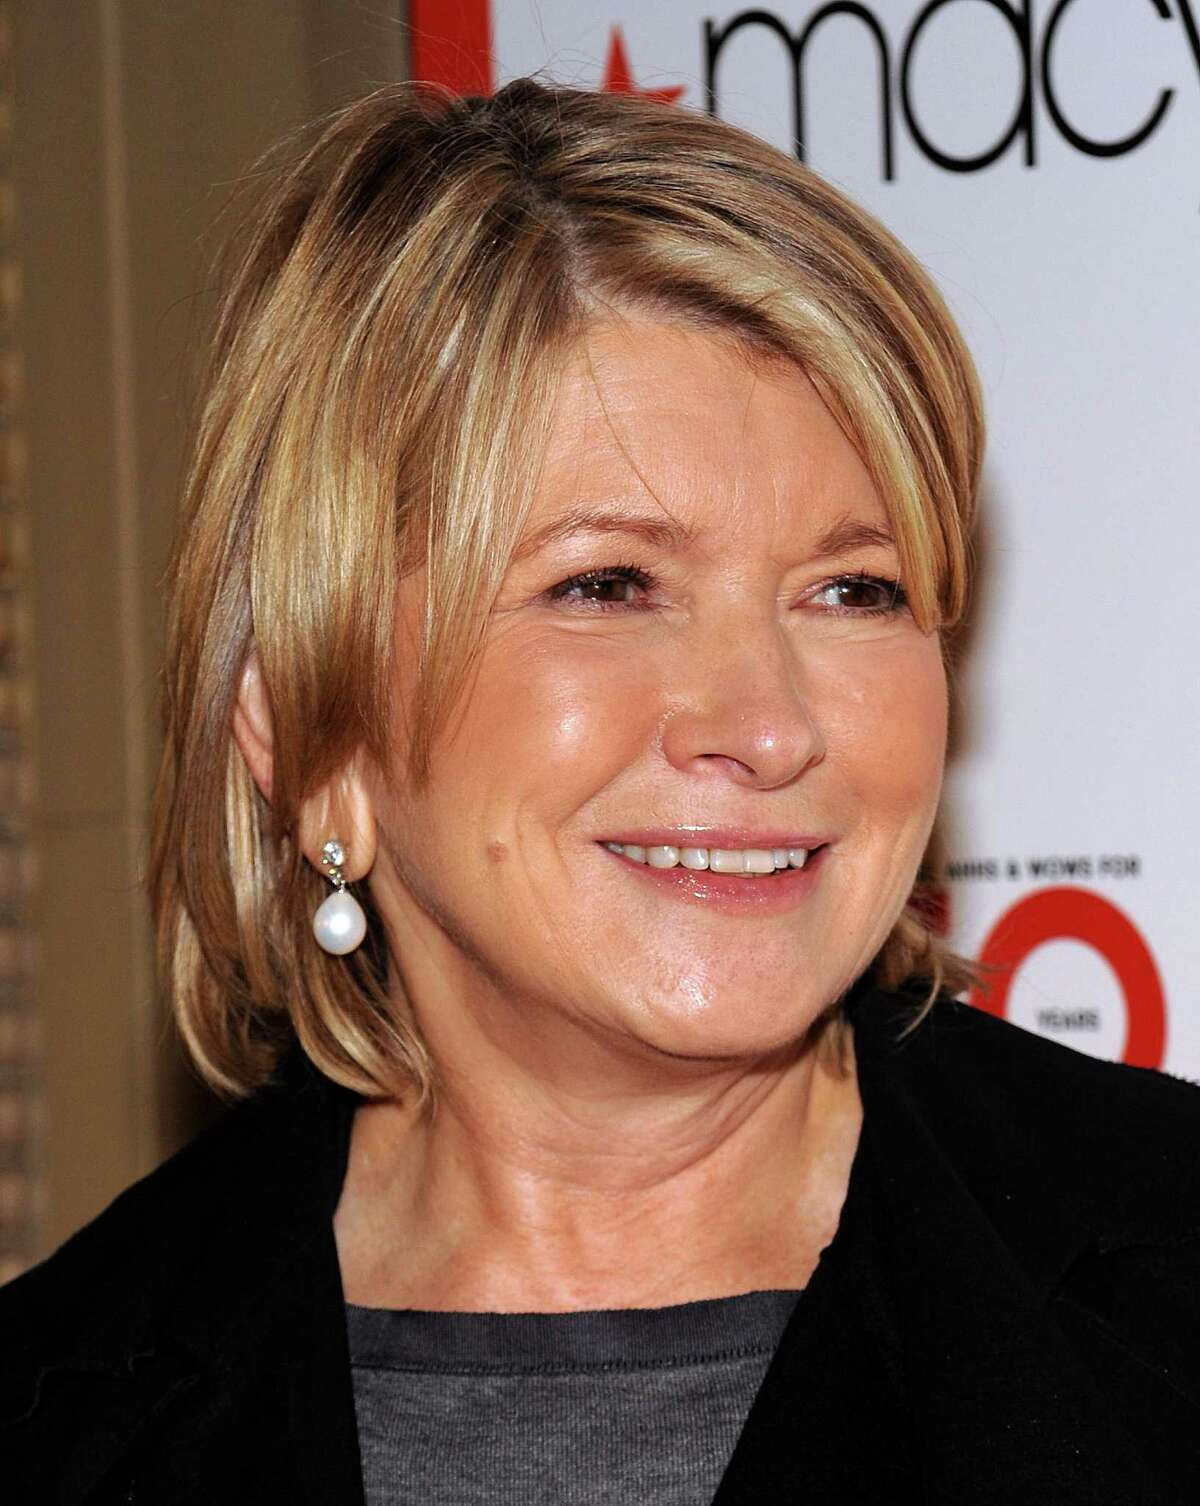 """Martha Stewart Living Omnimedia Layoffs. Sales declines. Management turmoil. And one of its biggest revenue streams comes from JCPenney. Things couldn't be further from """"a good thing"""" at MSO. Revenues declined 13 percent in 2012 to $122 million; and it lost over $18 million in cash from its balance sheet. There was only $20 million left at year end. AP Photo/Evan Agostini, File AP Photo/Evan Agostini, File"""